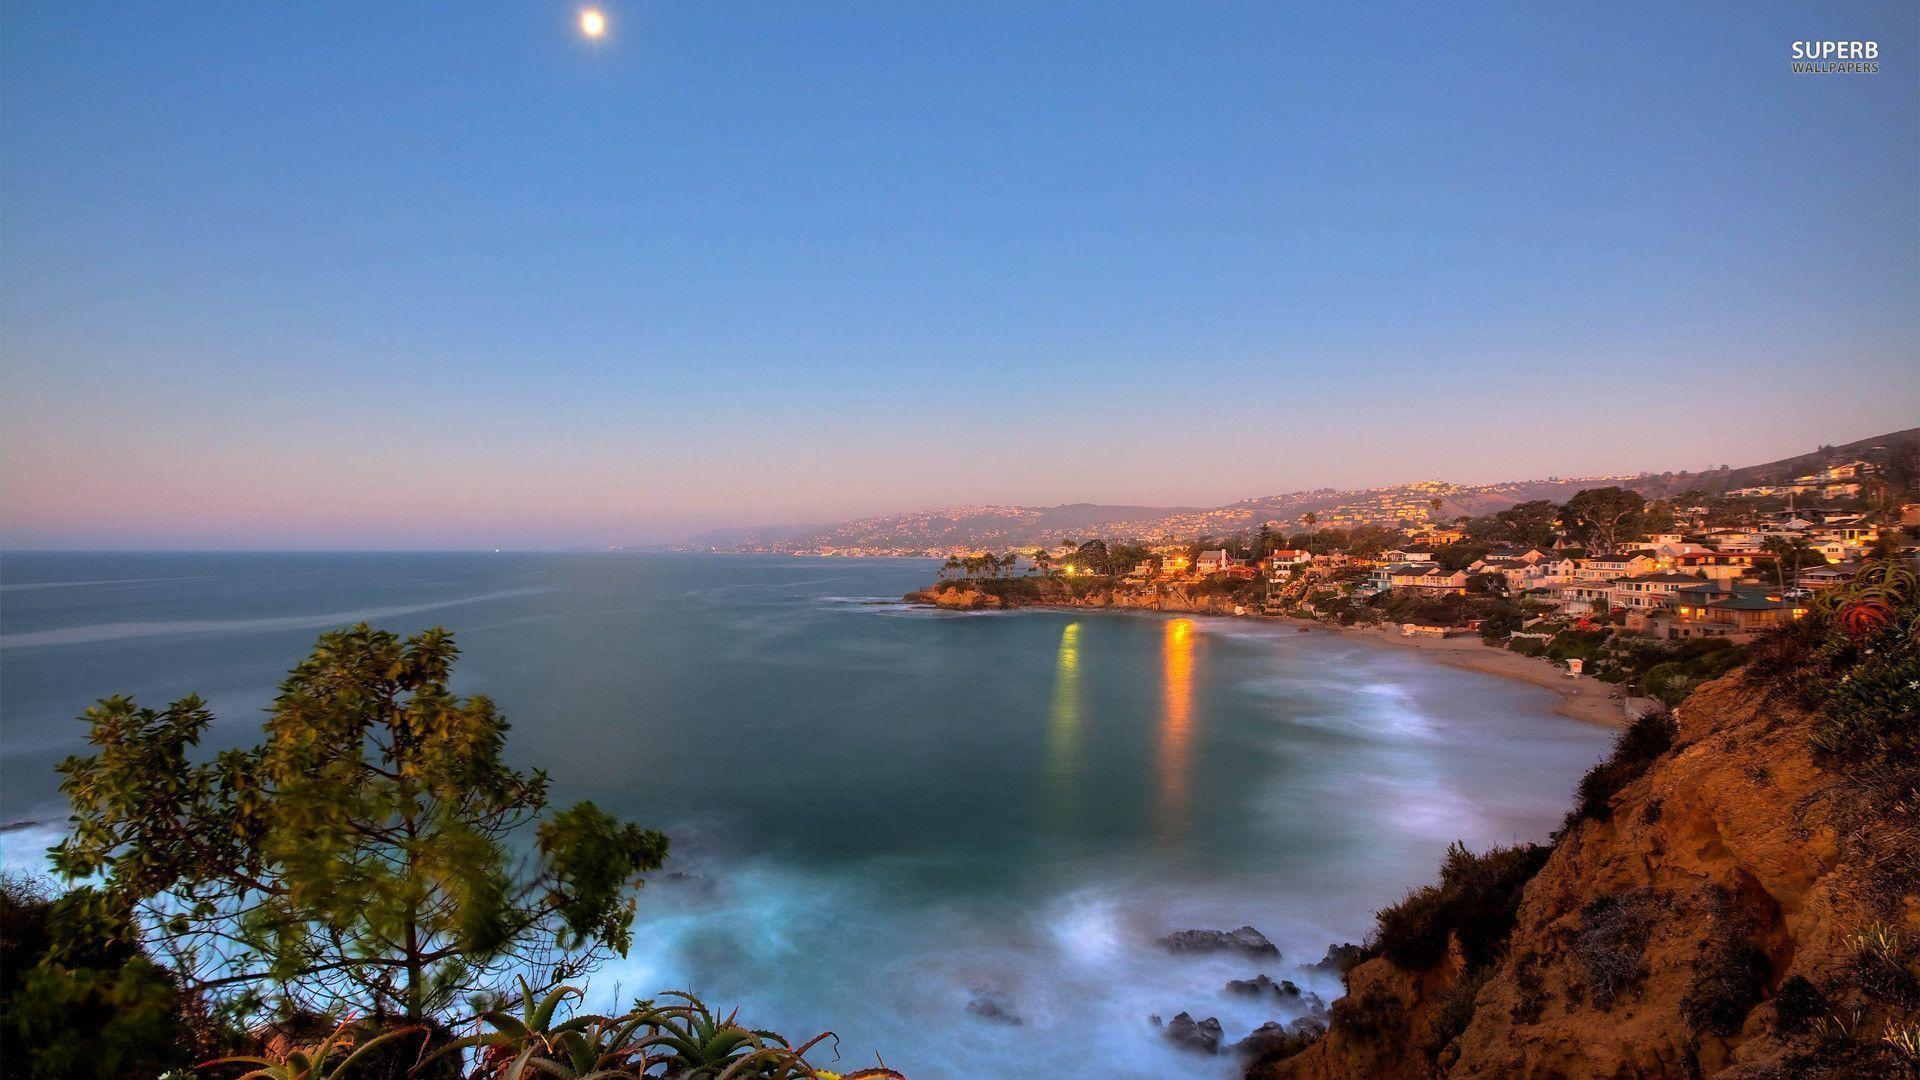 Laguna Beach Wallpapers - Wallpaper Cave